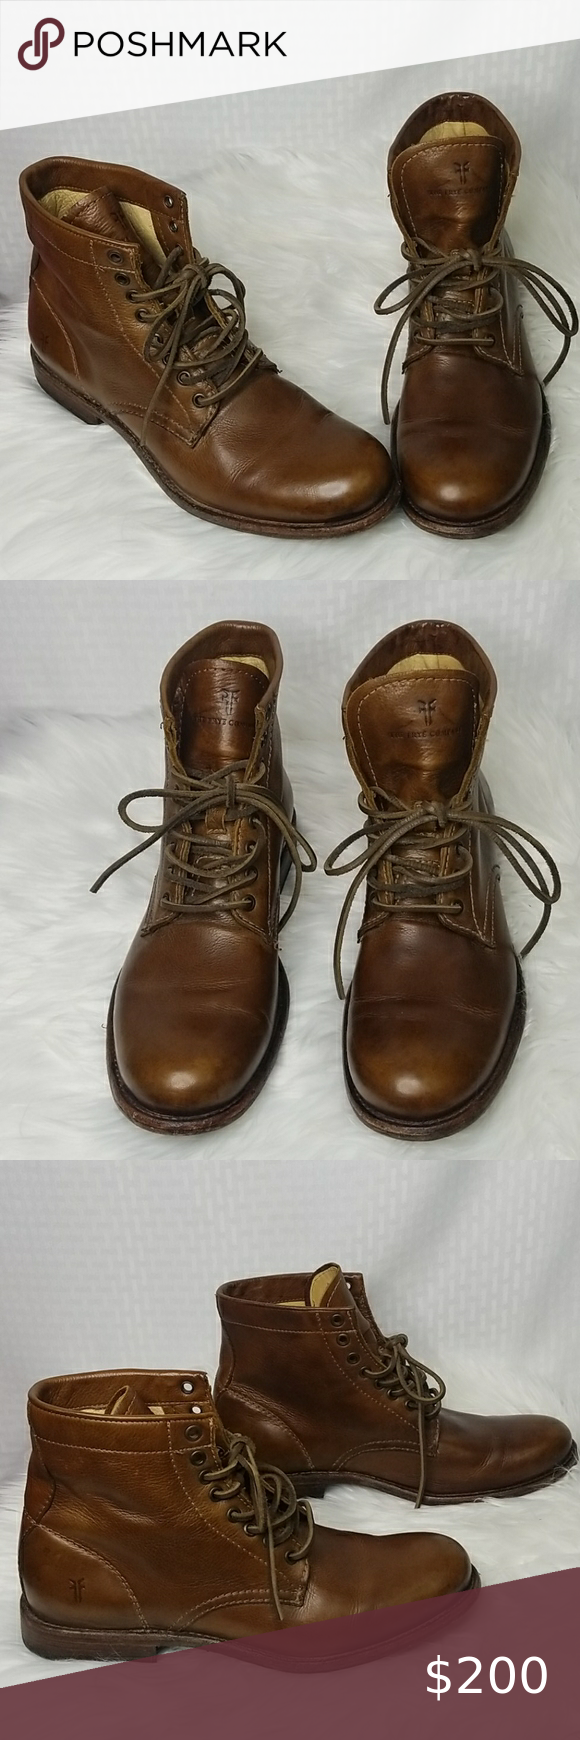 Mens FRYE leather lace up boots great